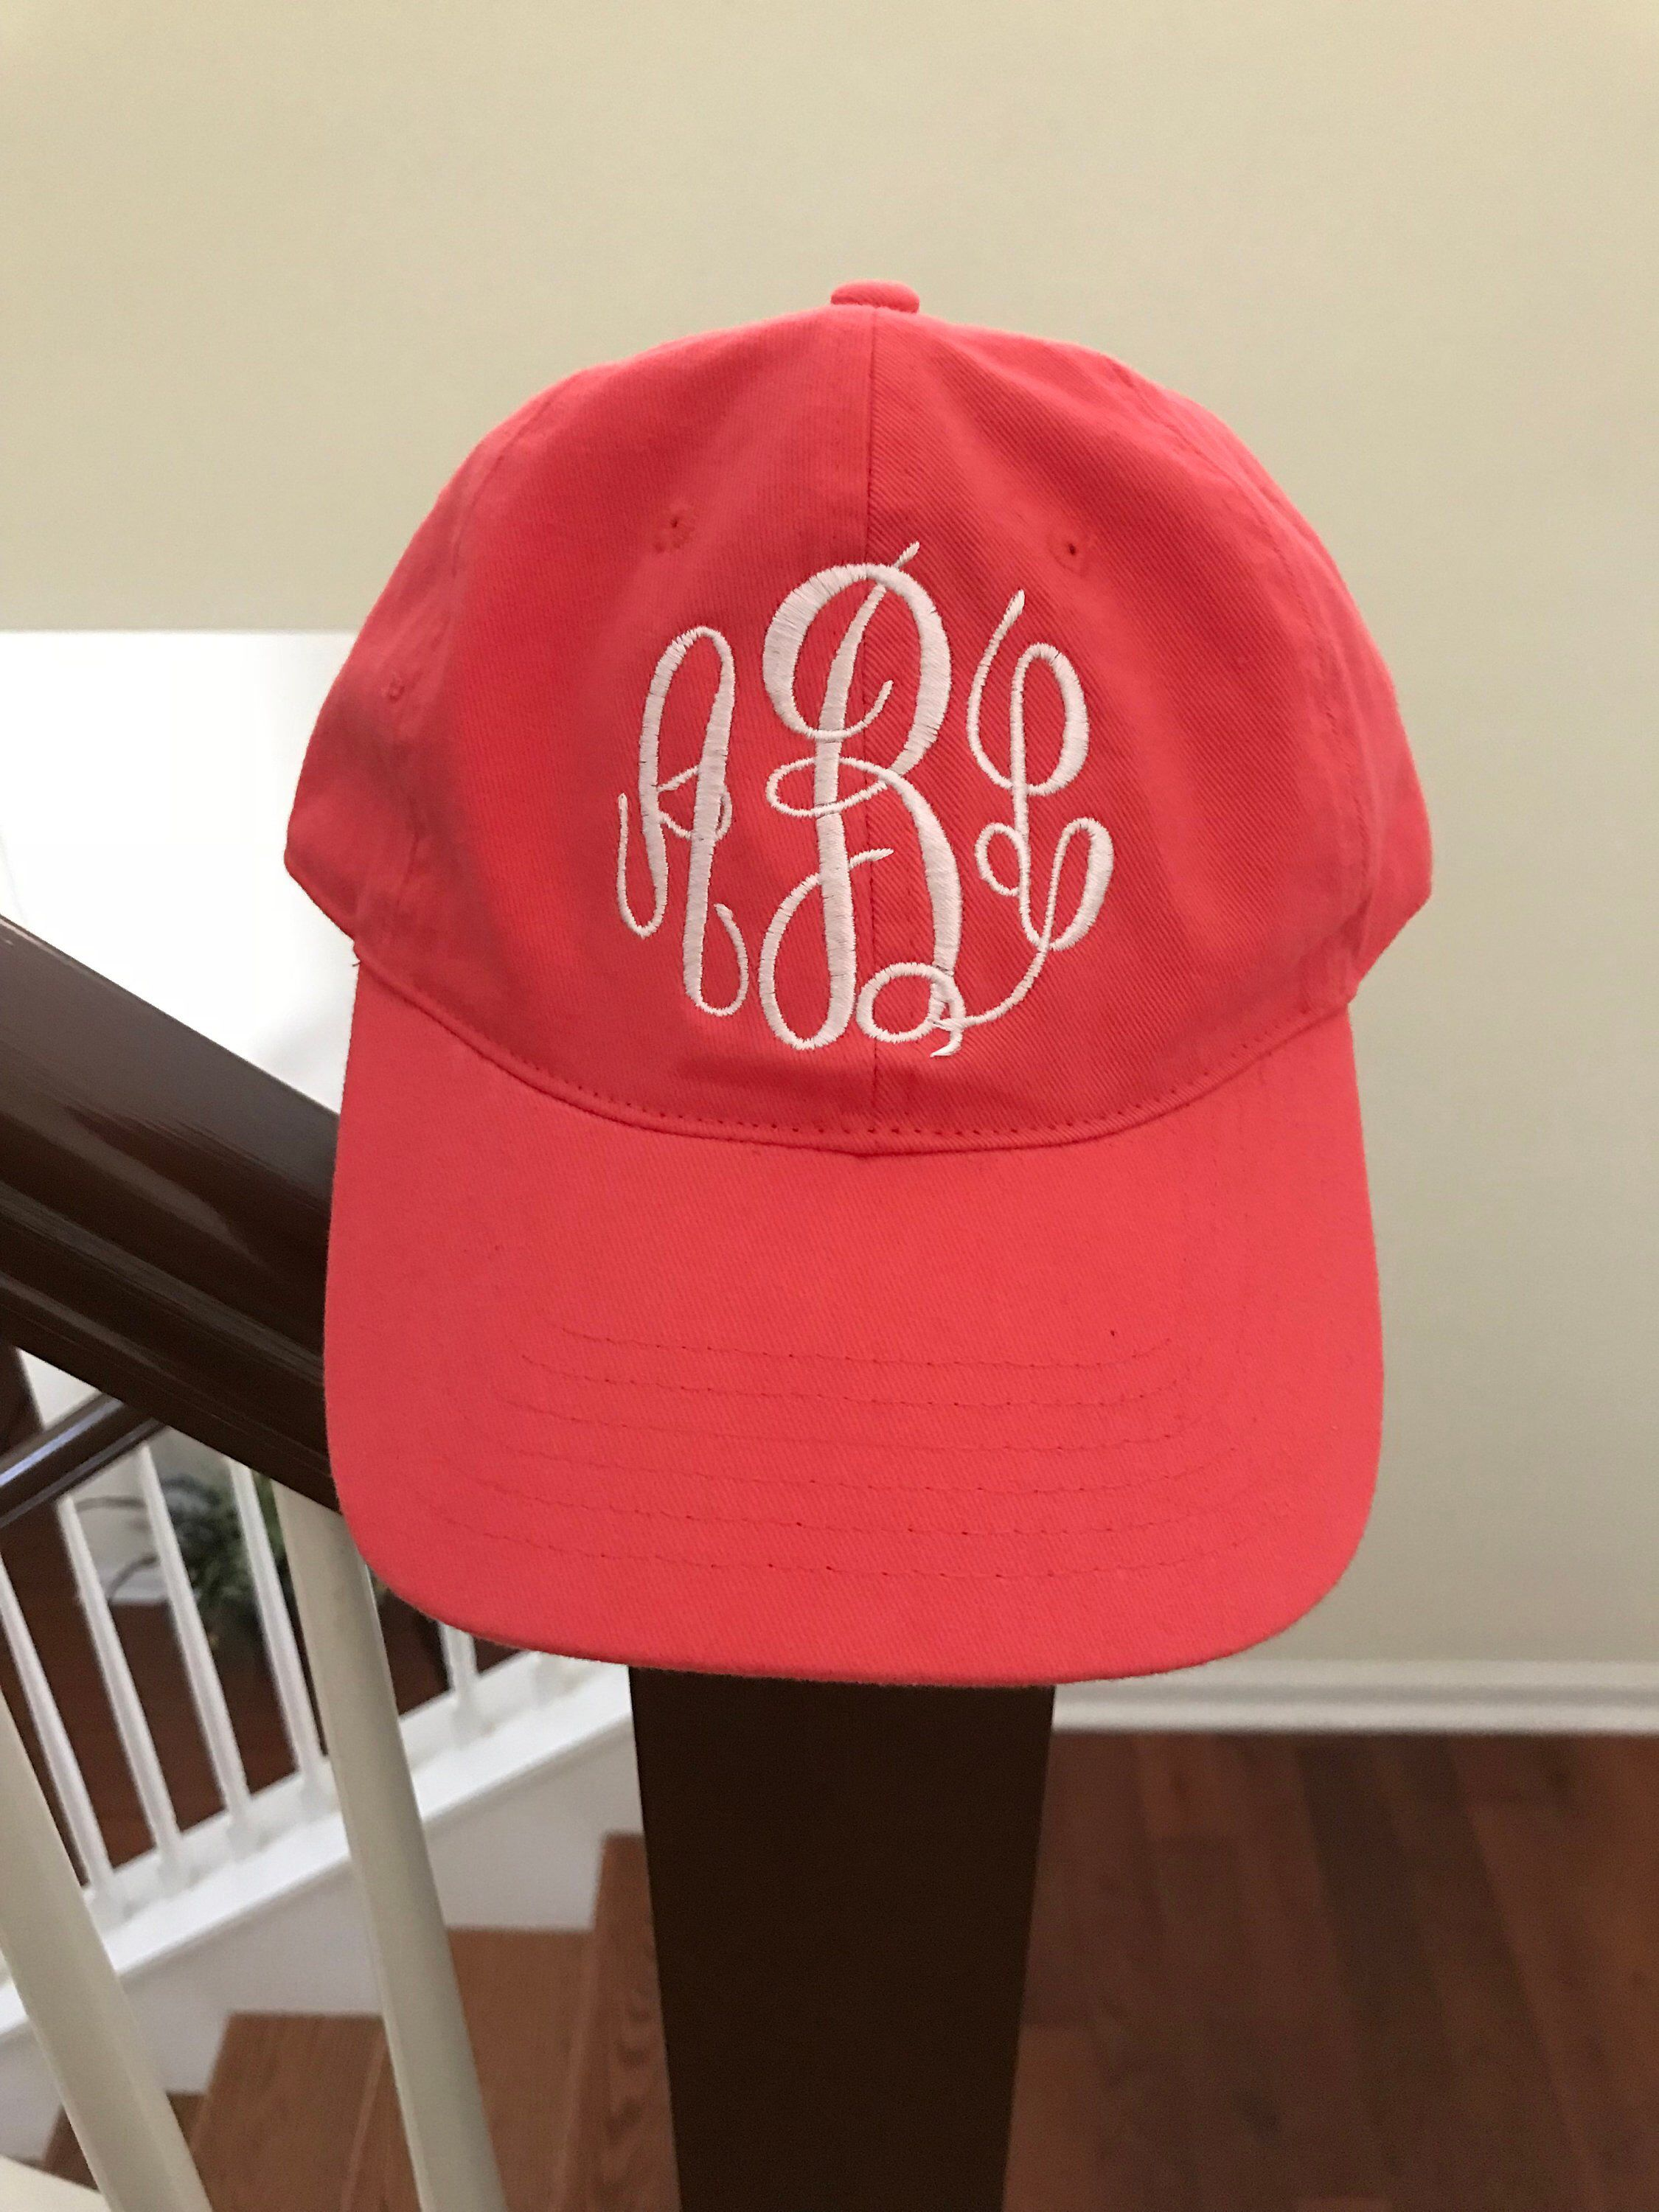 8db5516e193 Excited to share this item from my  etsy shop  Womens Baseball Cap - Monogram  Hat - Personalized Hat - Monogram Baseball Hat - Summer Accessories -  Monogram ...